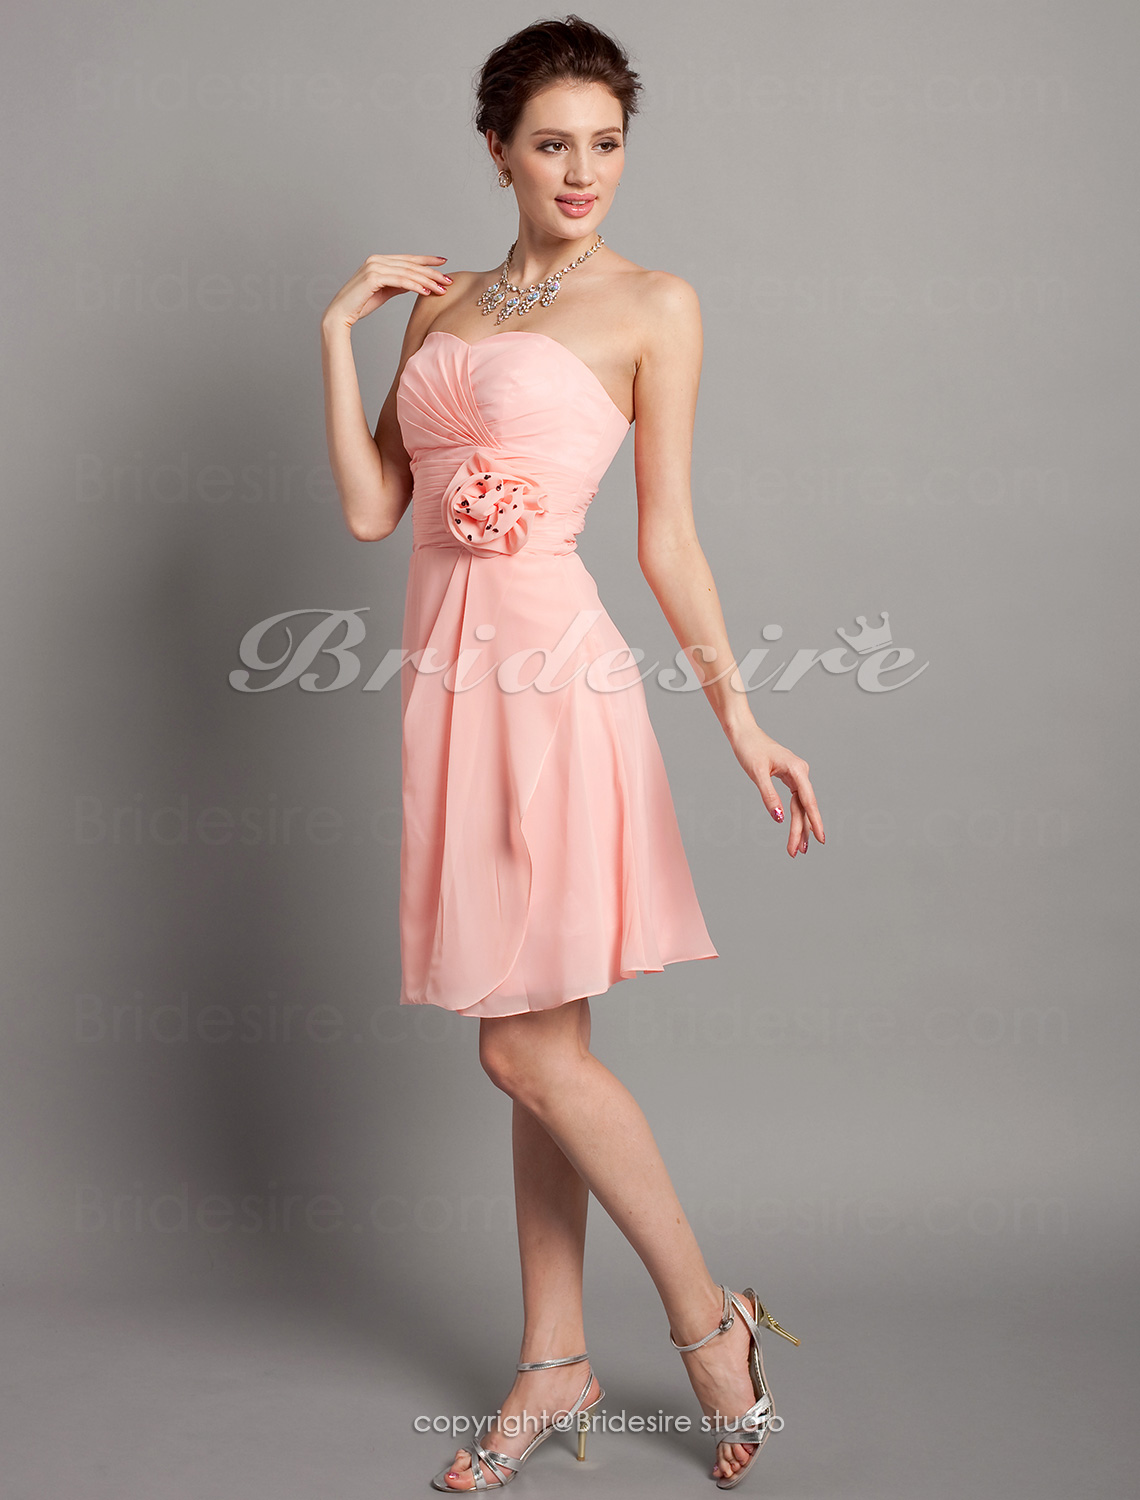 Sheath/ Column Chiffon Sweetheart Knee-length Bridesmaid Dress